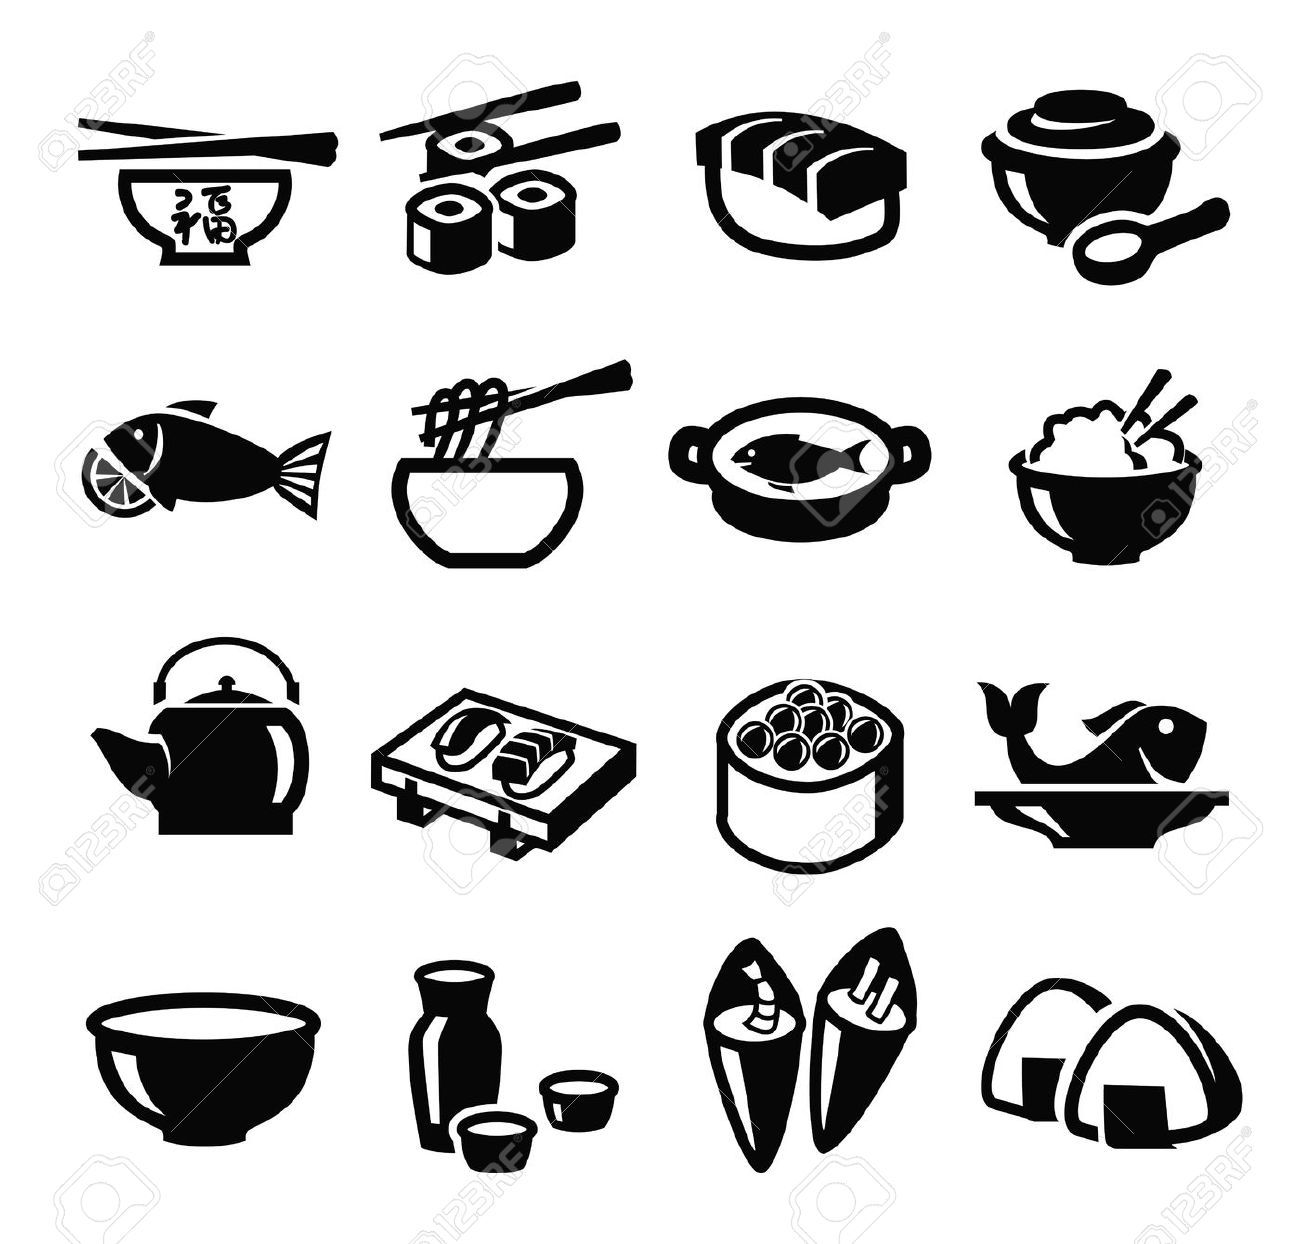 Food Stock Vector Illustration And Royalty Free Food Clipart Food Icons Icon Set Sushi Drawing